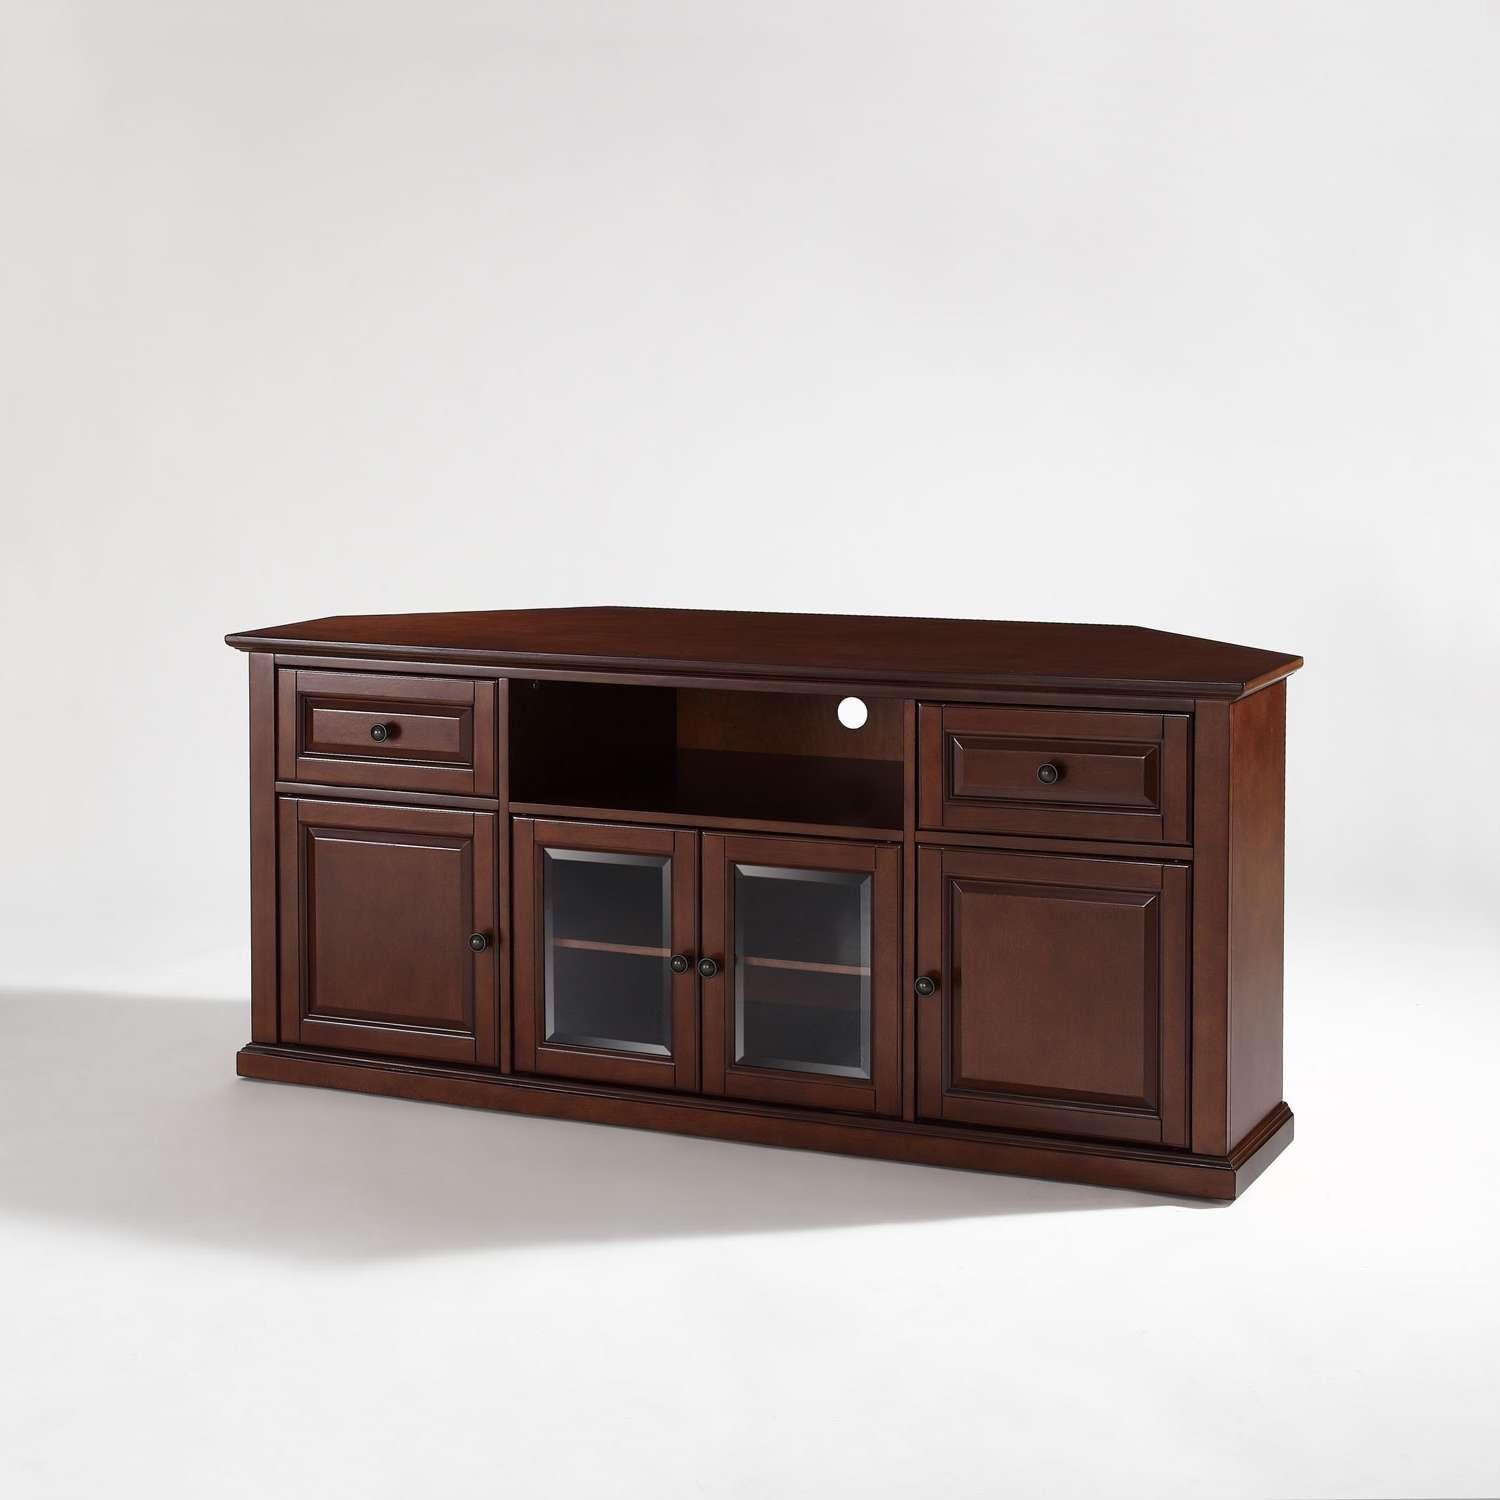 60 Inch Corner Tv Stand In Vintage Mahogany Crosley Furniture In Tv Stands 40 Inches Wide (View 7 of 15)